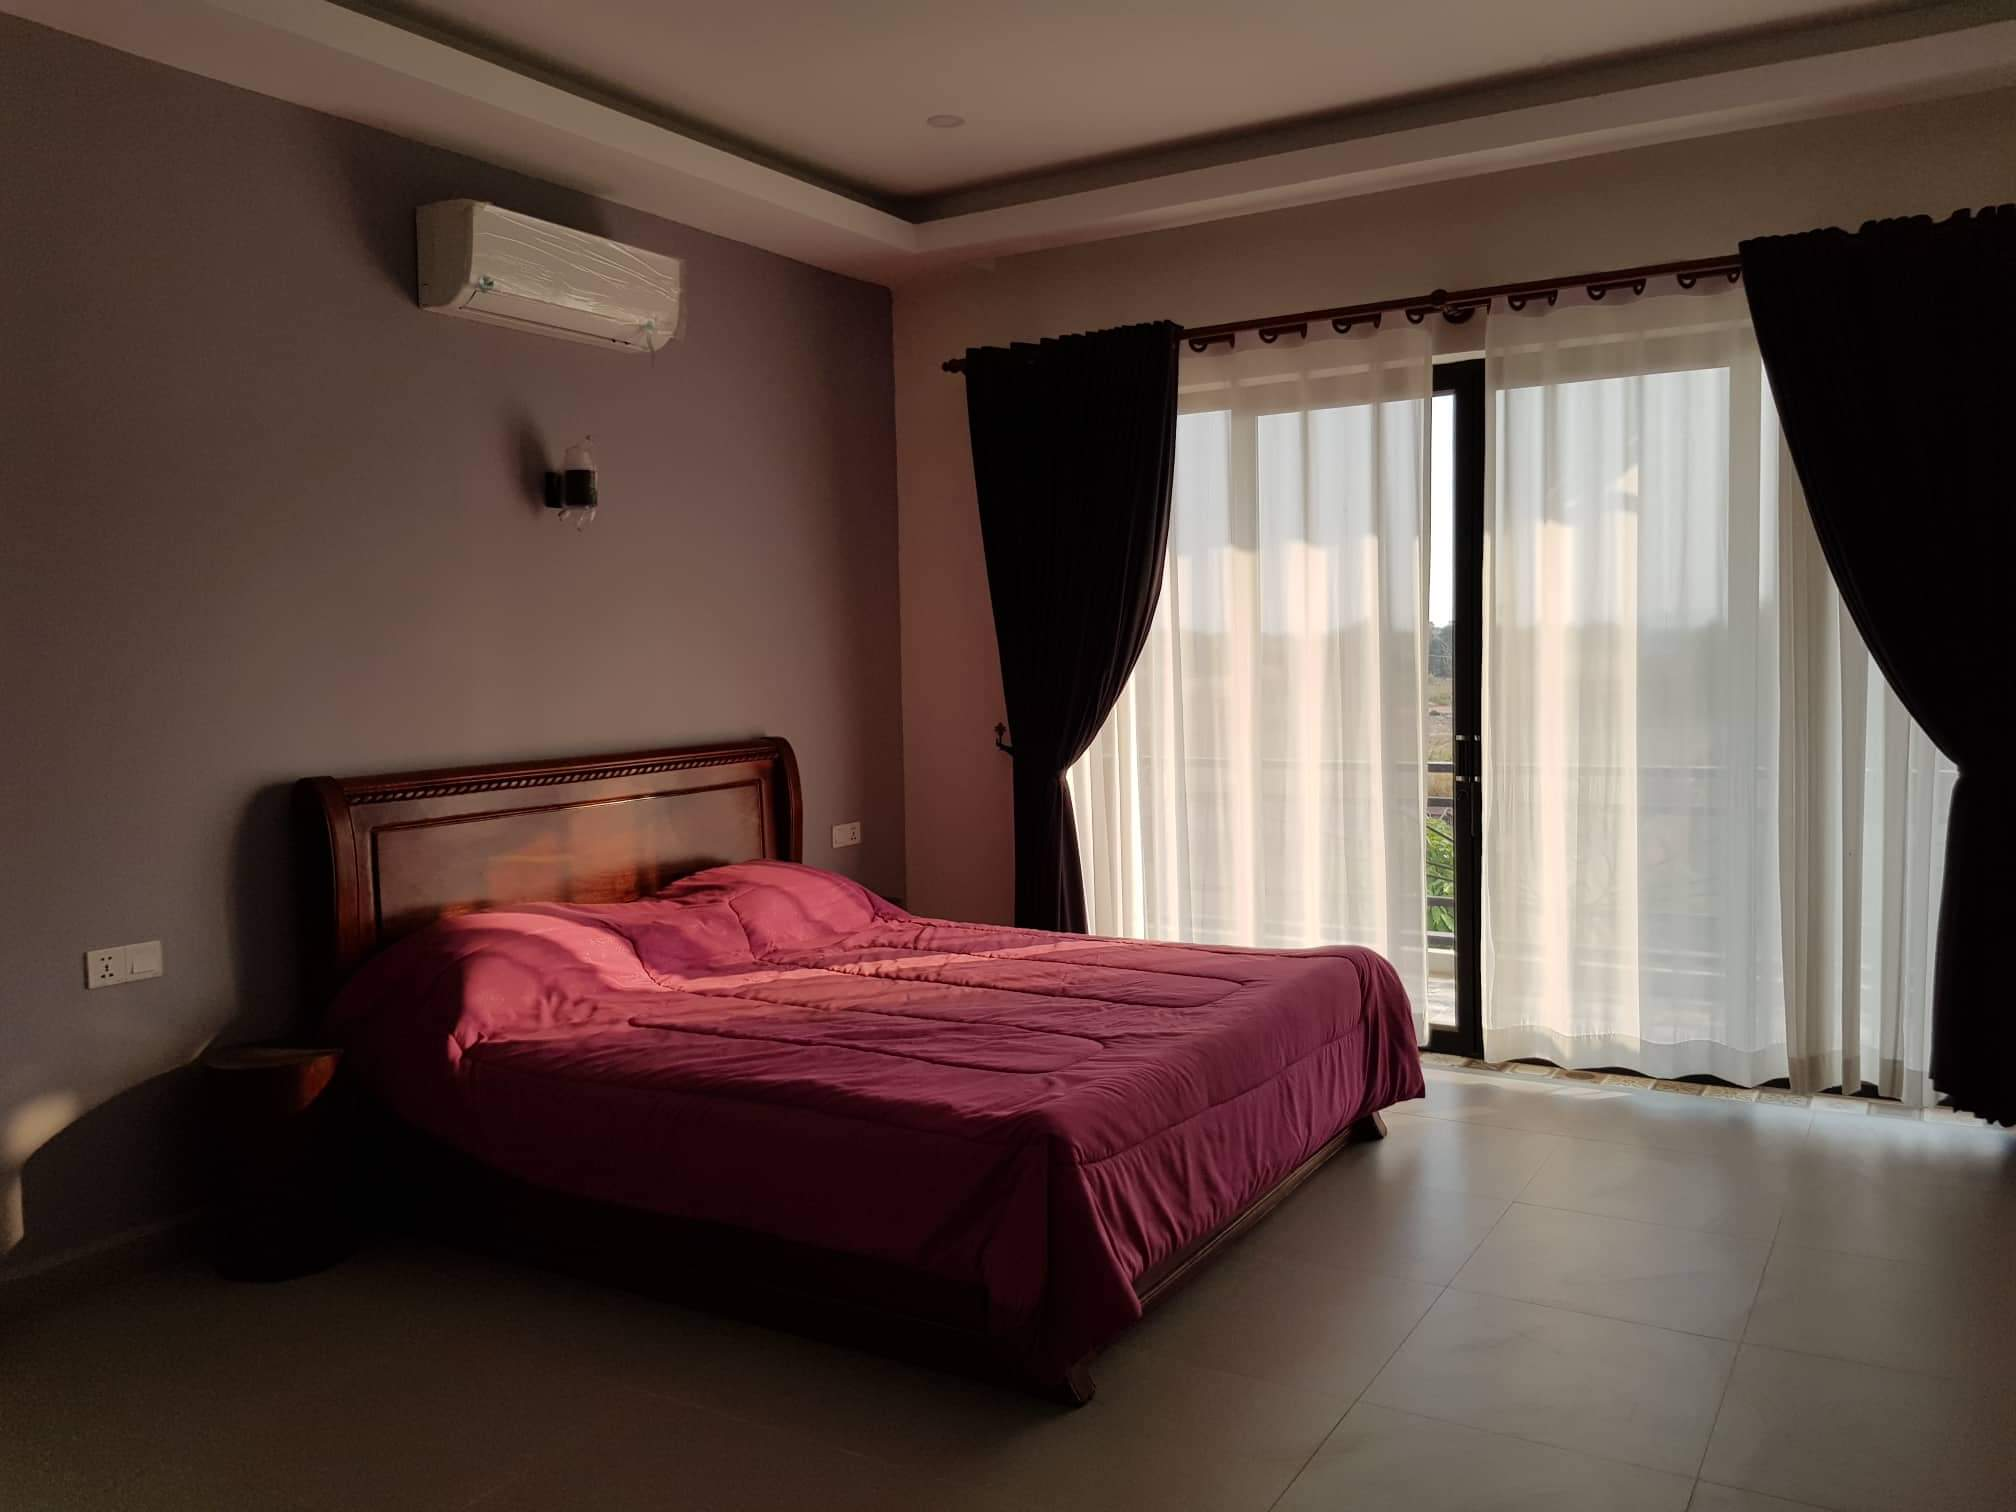 Fully furnished apartment 93m2 for rent